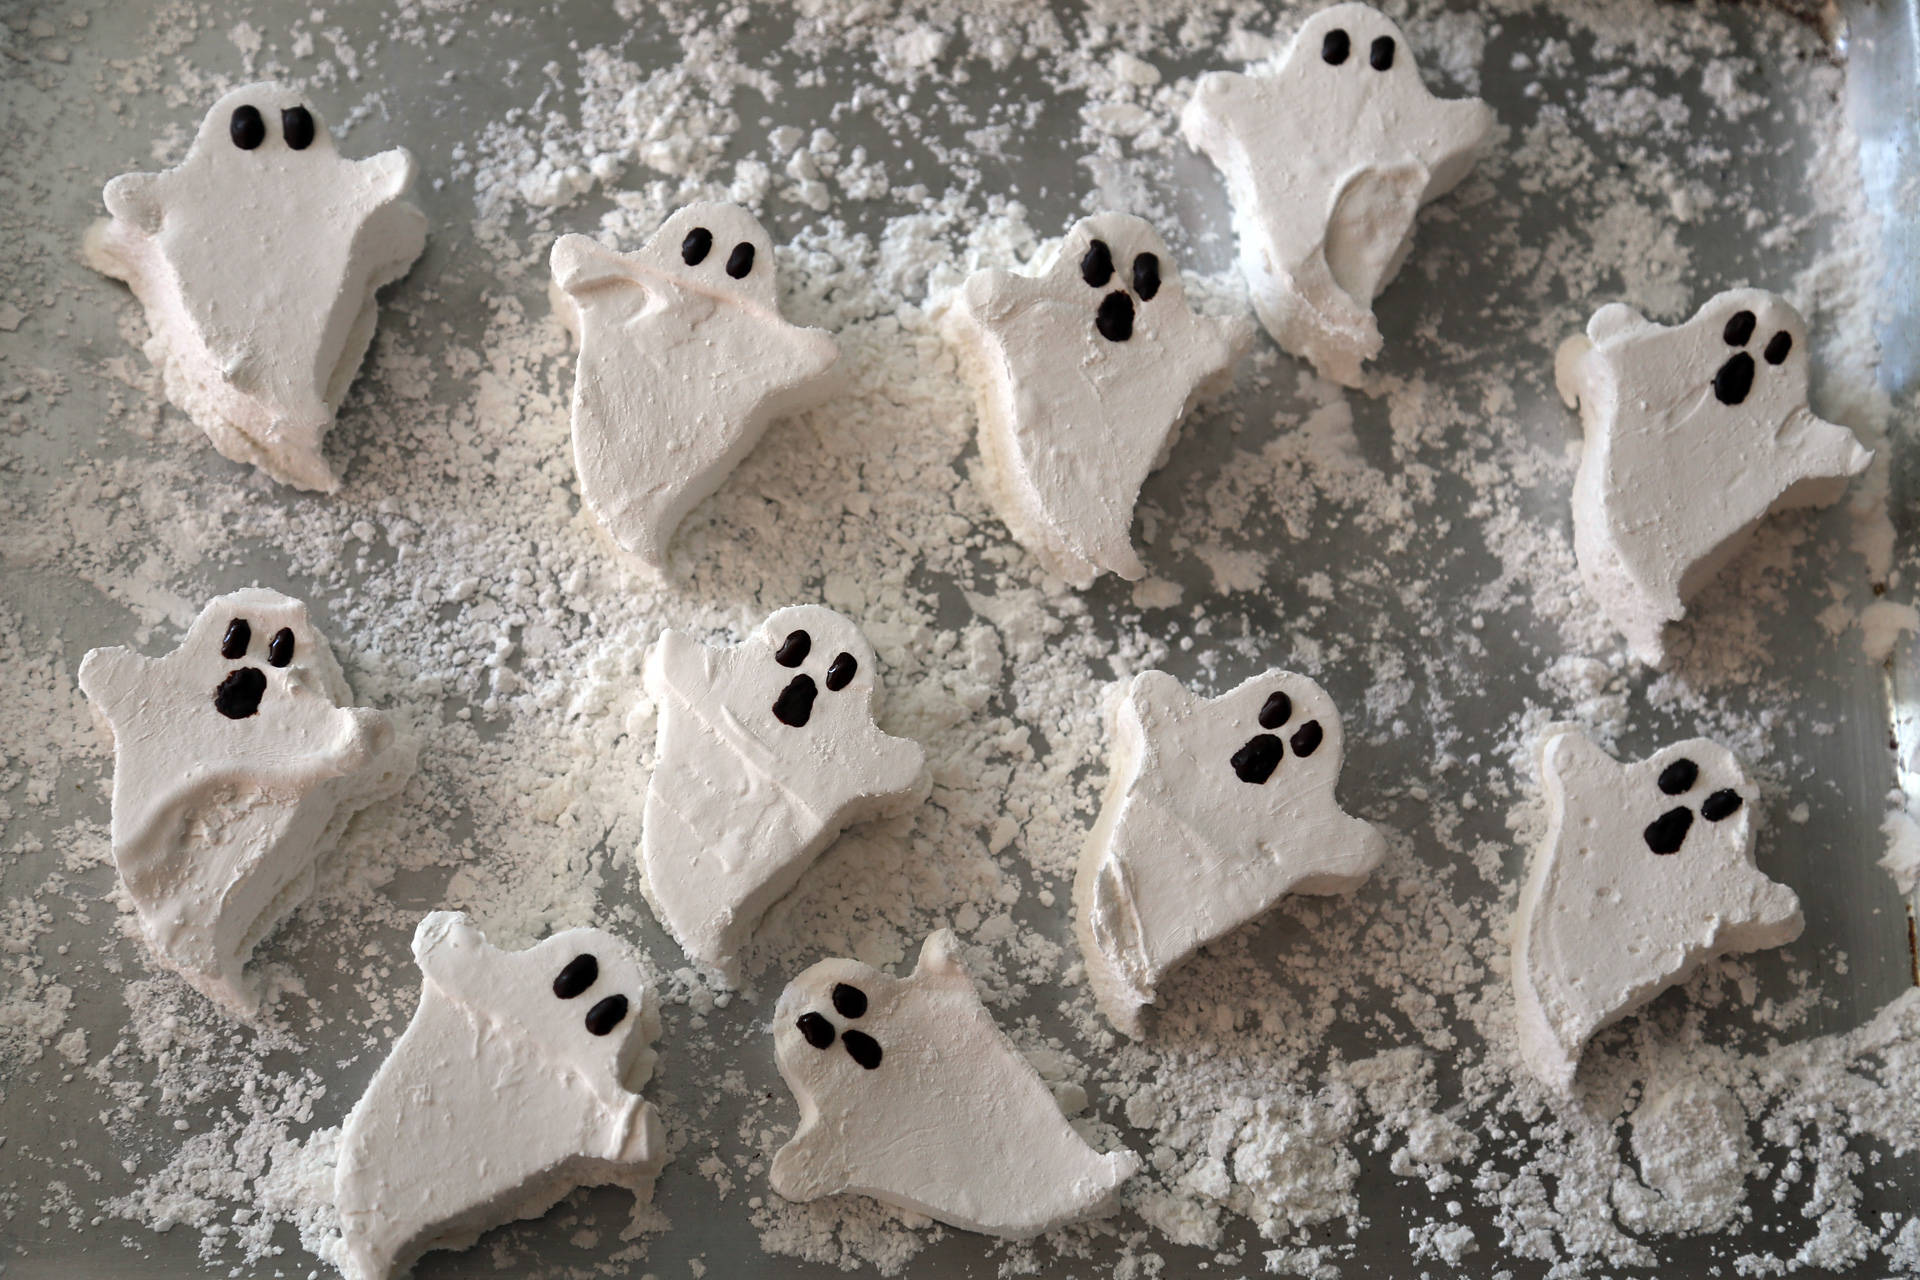 Homemade Marshmallow Ghosts Wendy Goodfriend